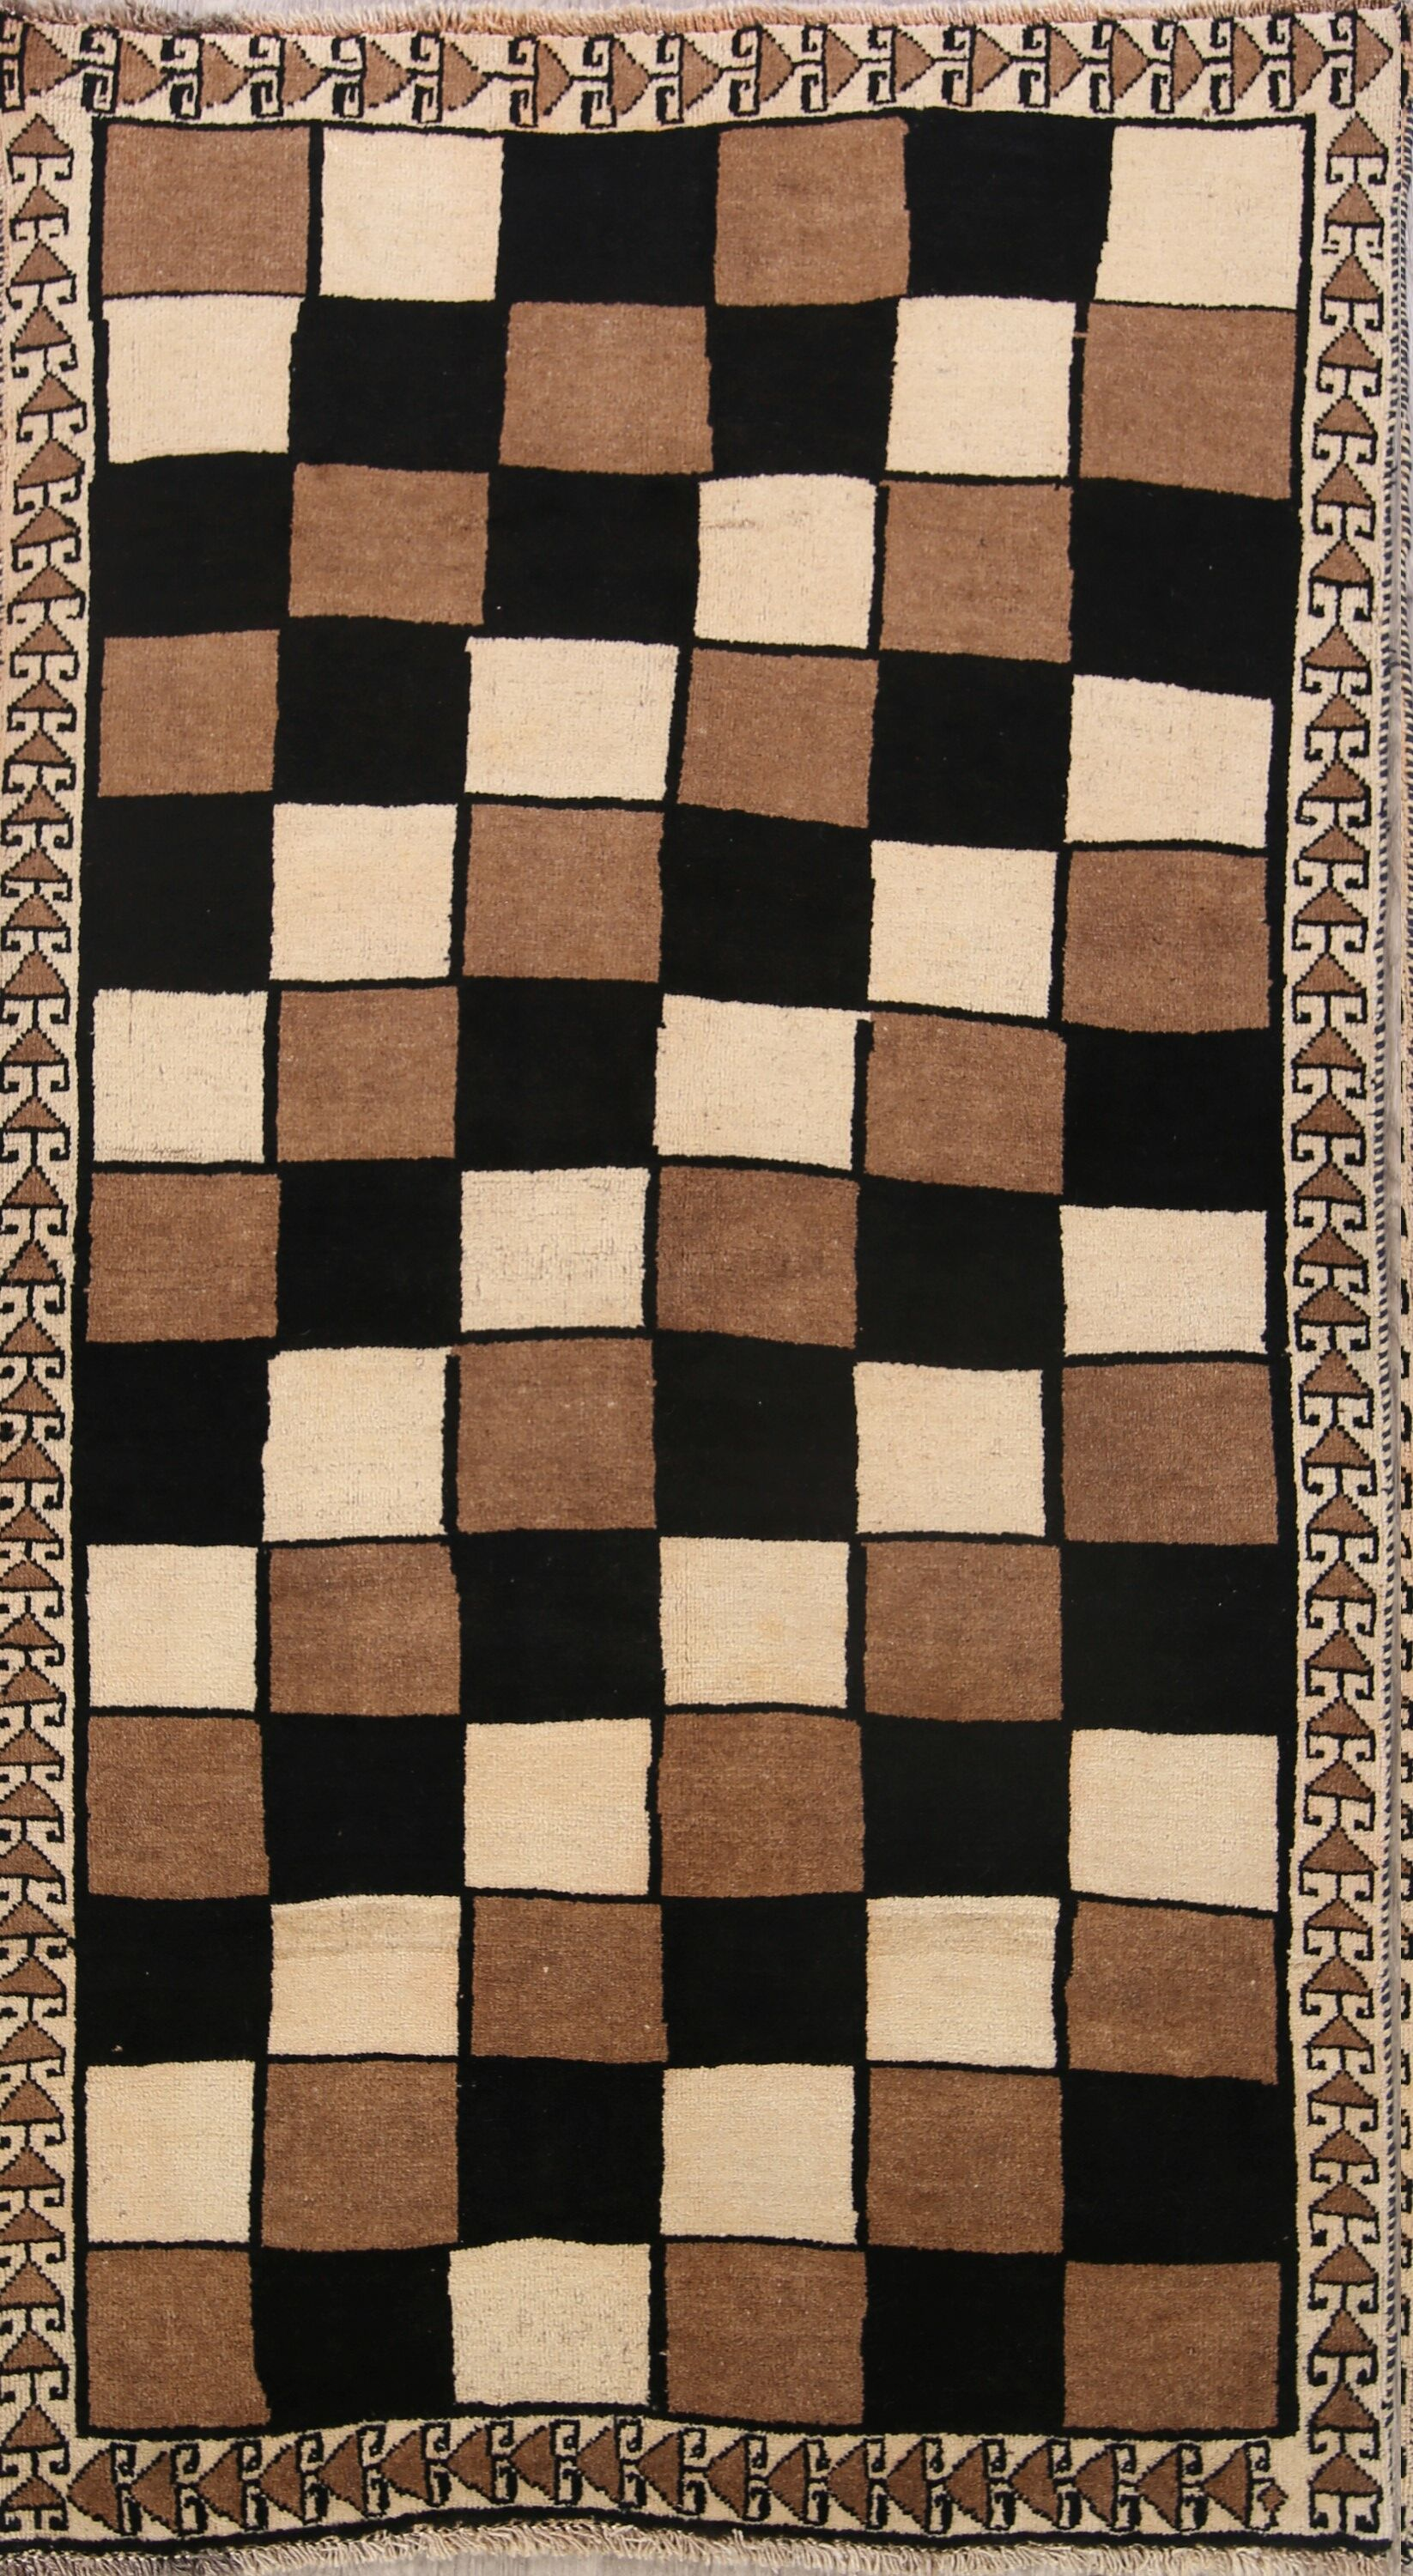 One-of-a-Kind Traditional Checked Modern Gabbeh Shiraz Persian Hand-Knotted 3'8